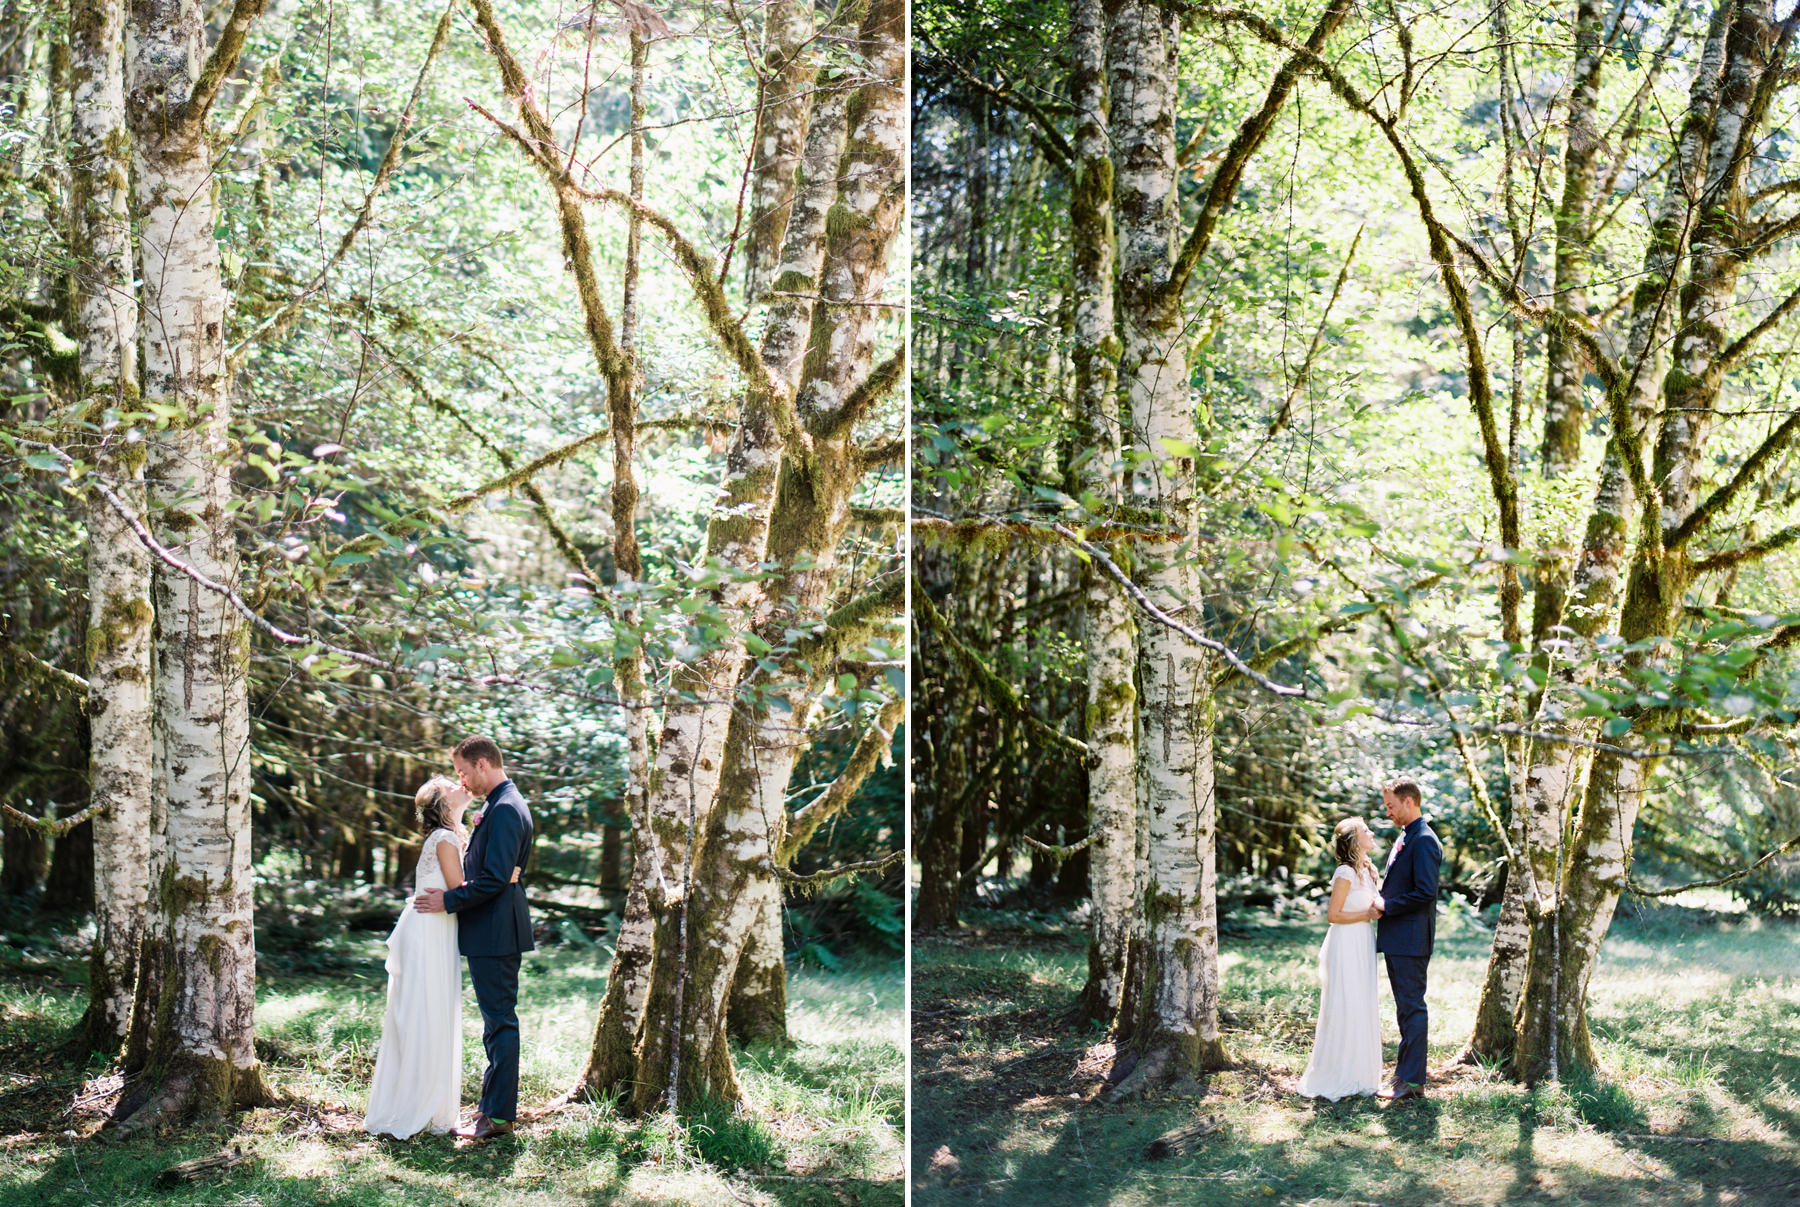 161-fine-art-film-wedding-portraits-at-nature-bride-near-the-lake-crescent-lodge.jpg